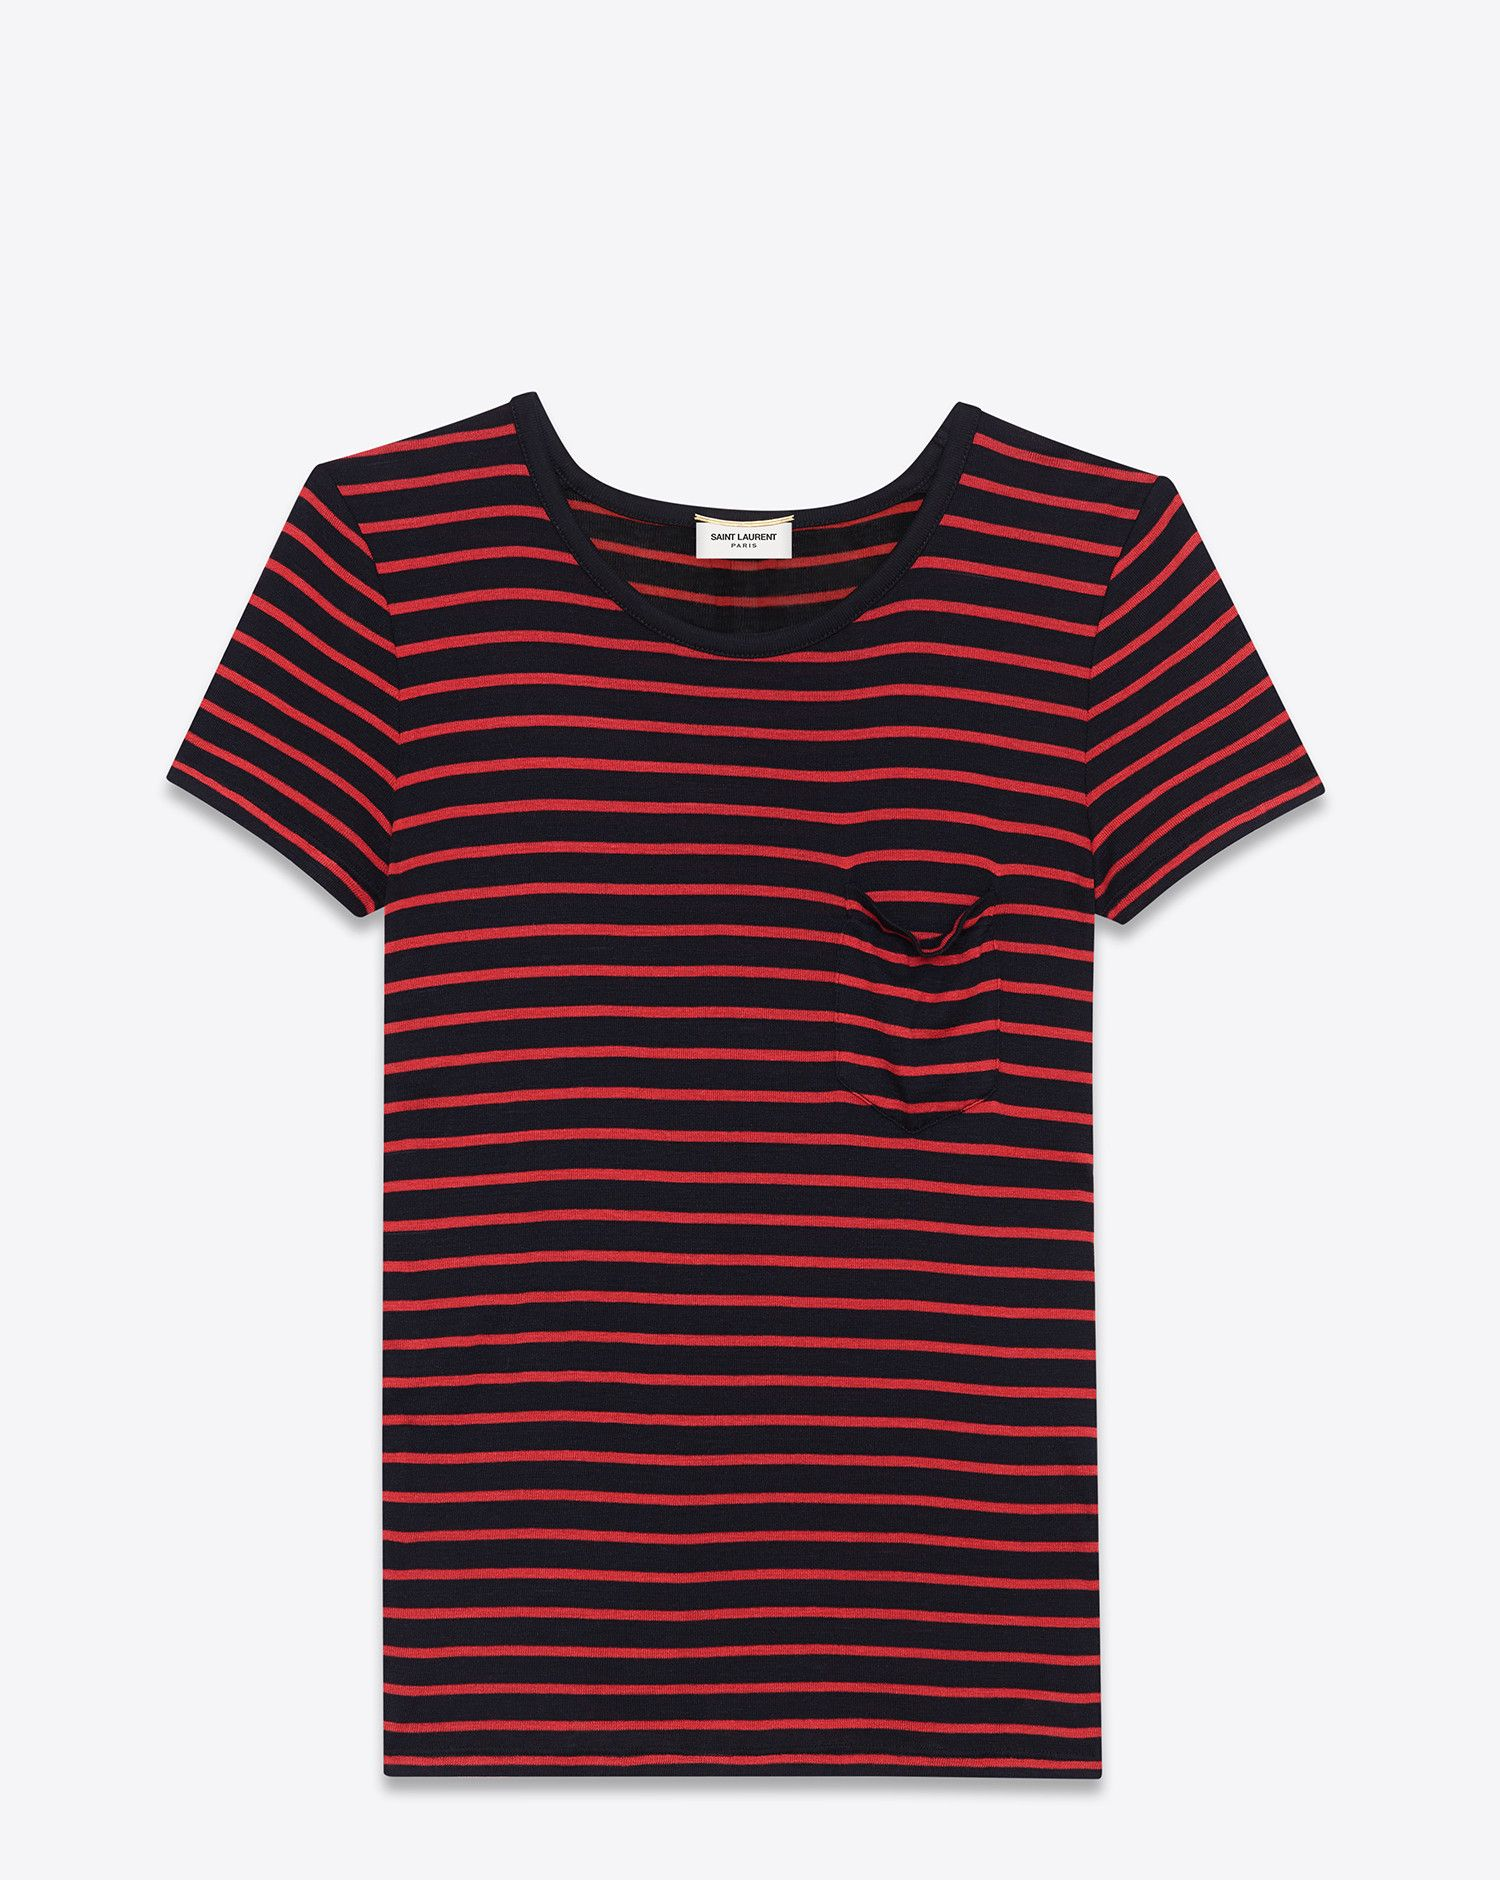 54f3a4b72e5f Saint Laurent Classic Short Sleeve Pocket T Shirt In Black And Red Striped  Silk Jersey - ysl.com